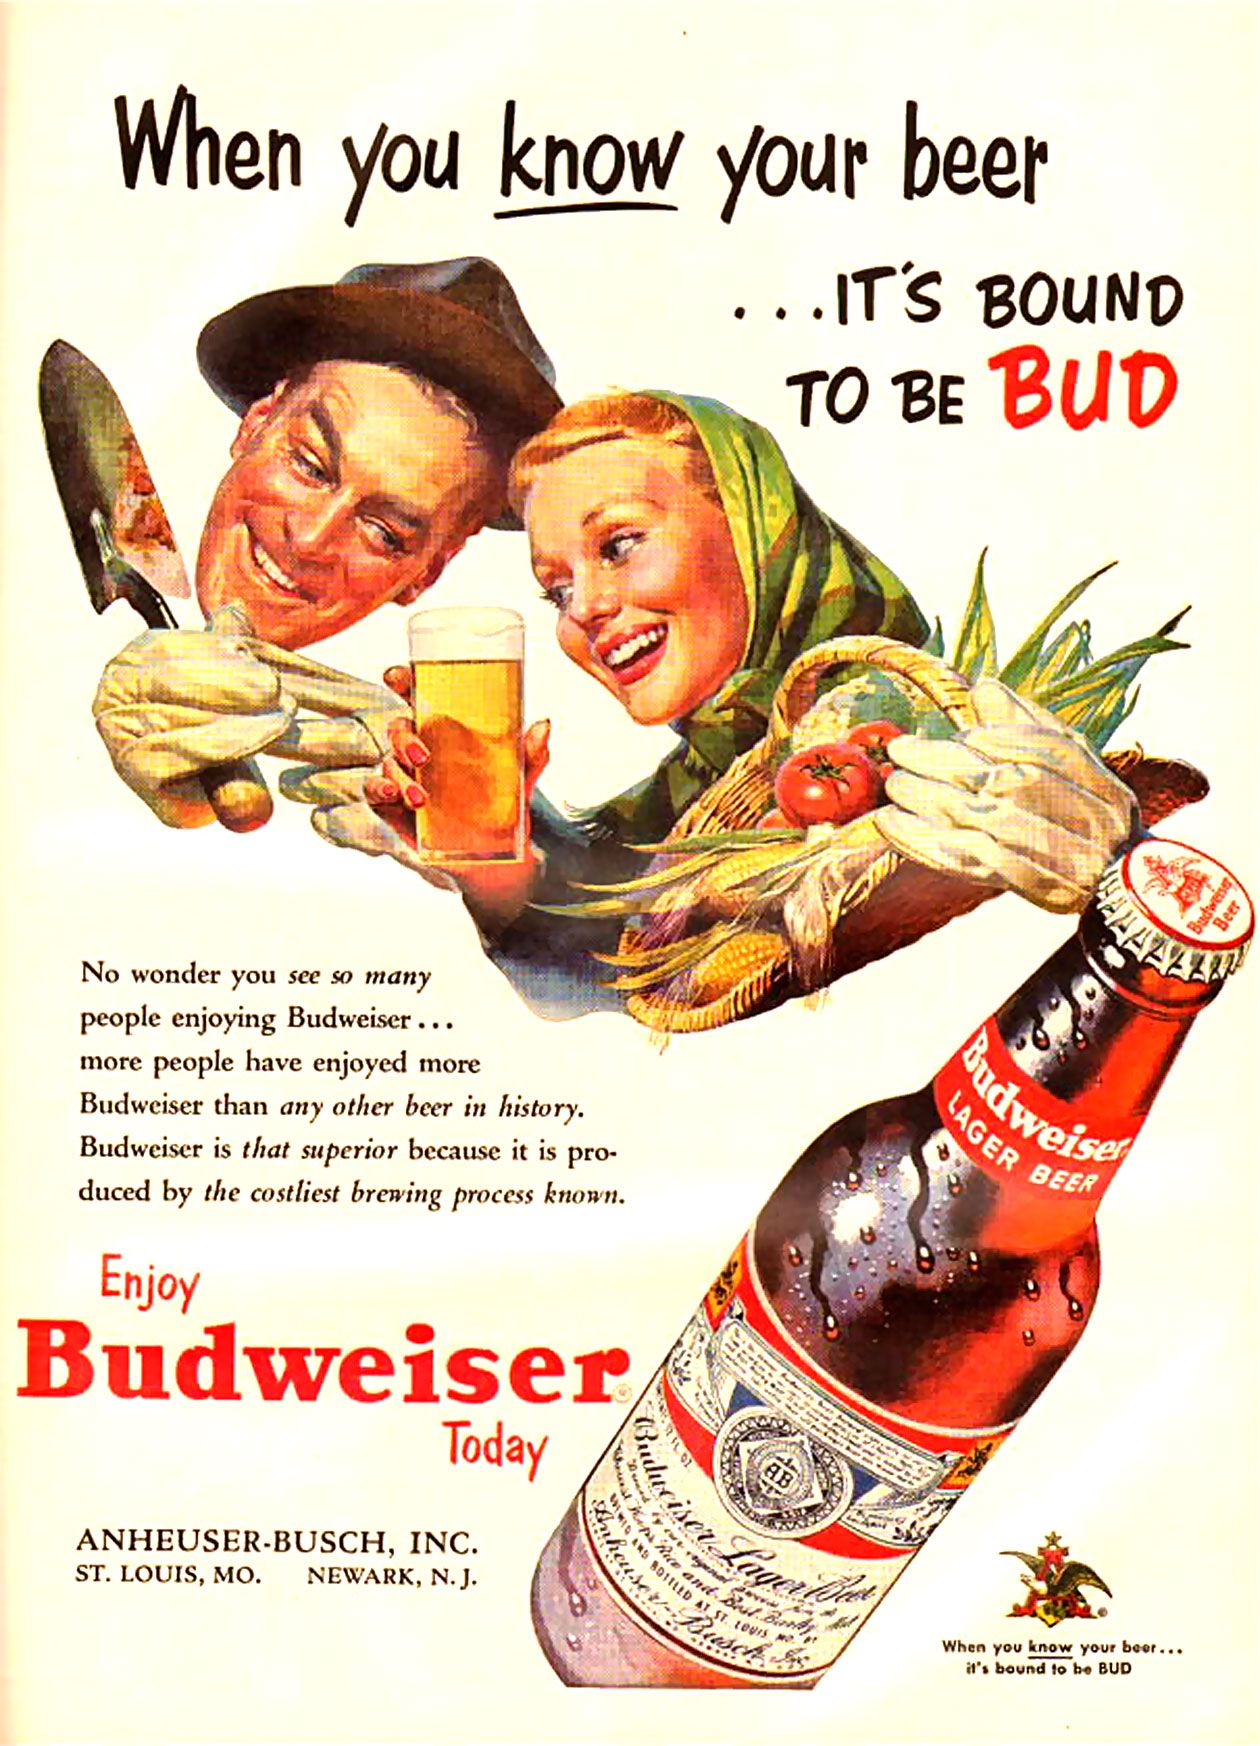 Beer ale stout ads food drinks drinks alcohol vintage retro